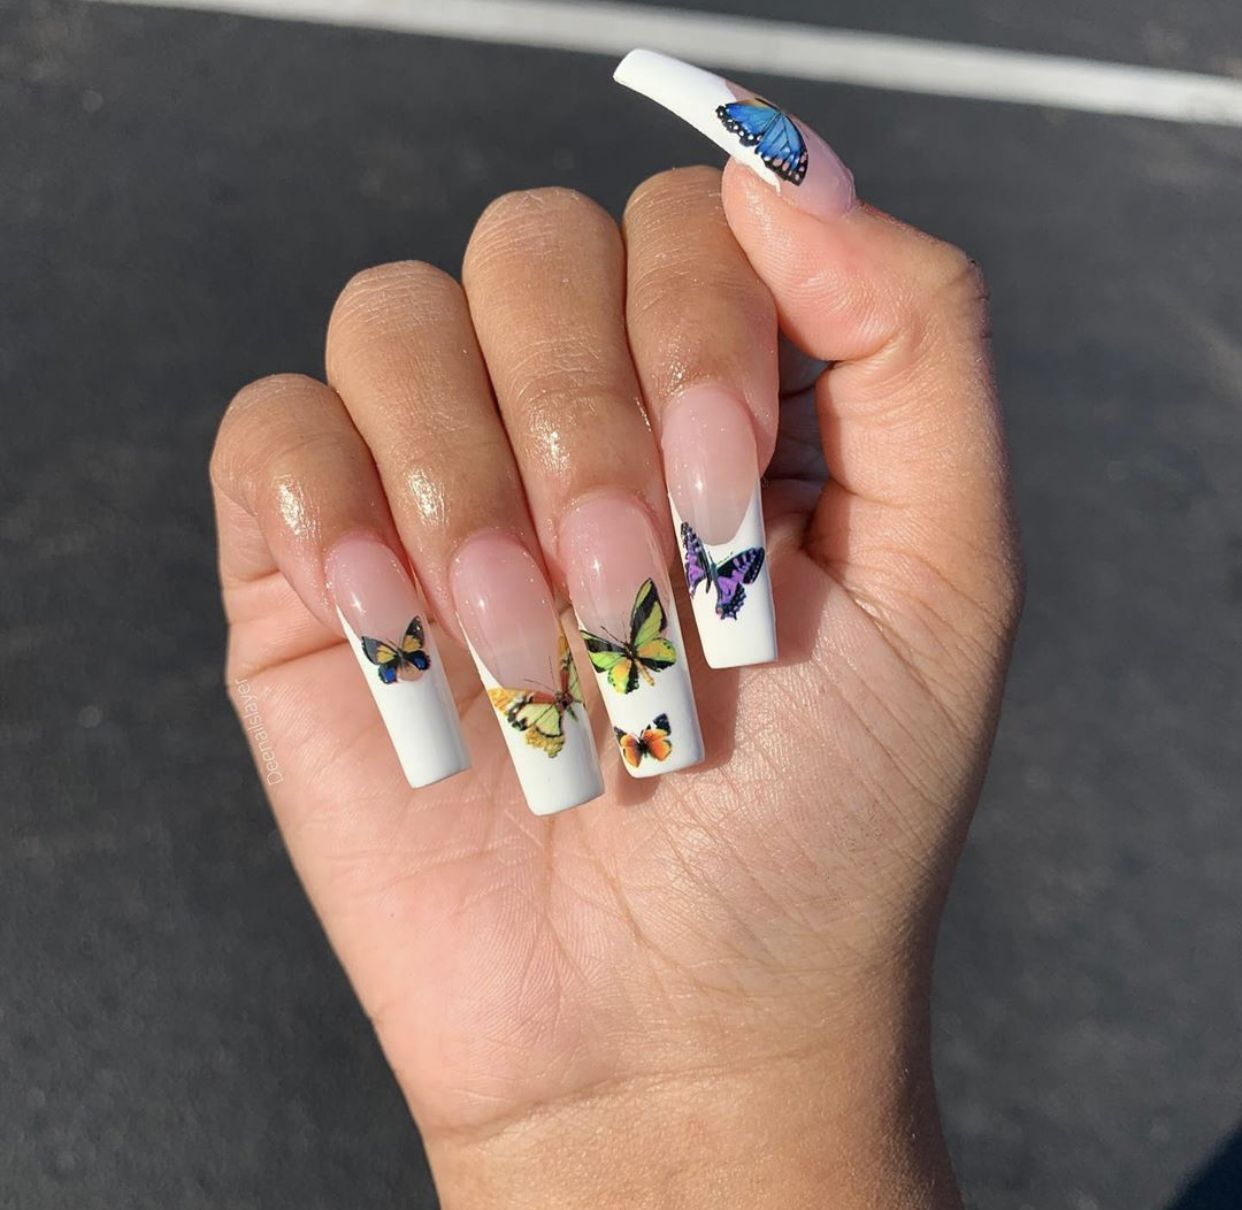 White Coffin French Tip Acrylic Butterfly Nails In 2020 French Tip Acrylic Nails Pretty Acrylic Nails Stylish Nails